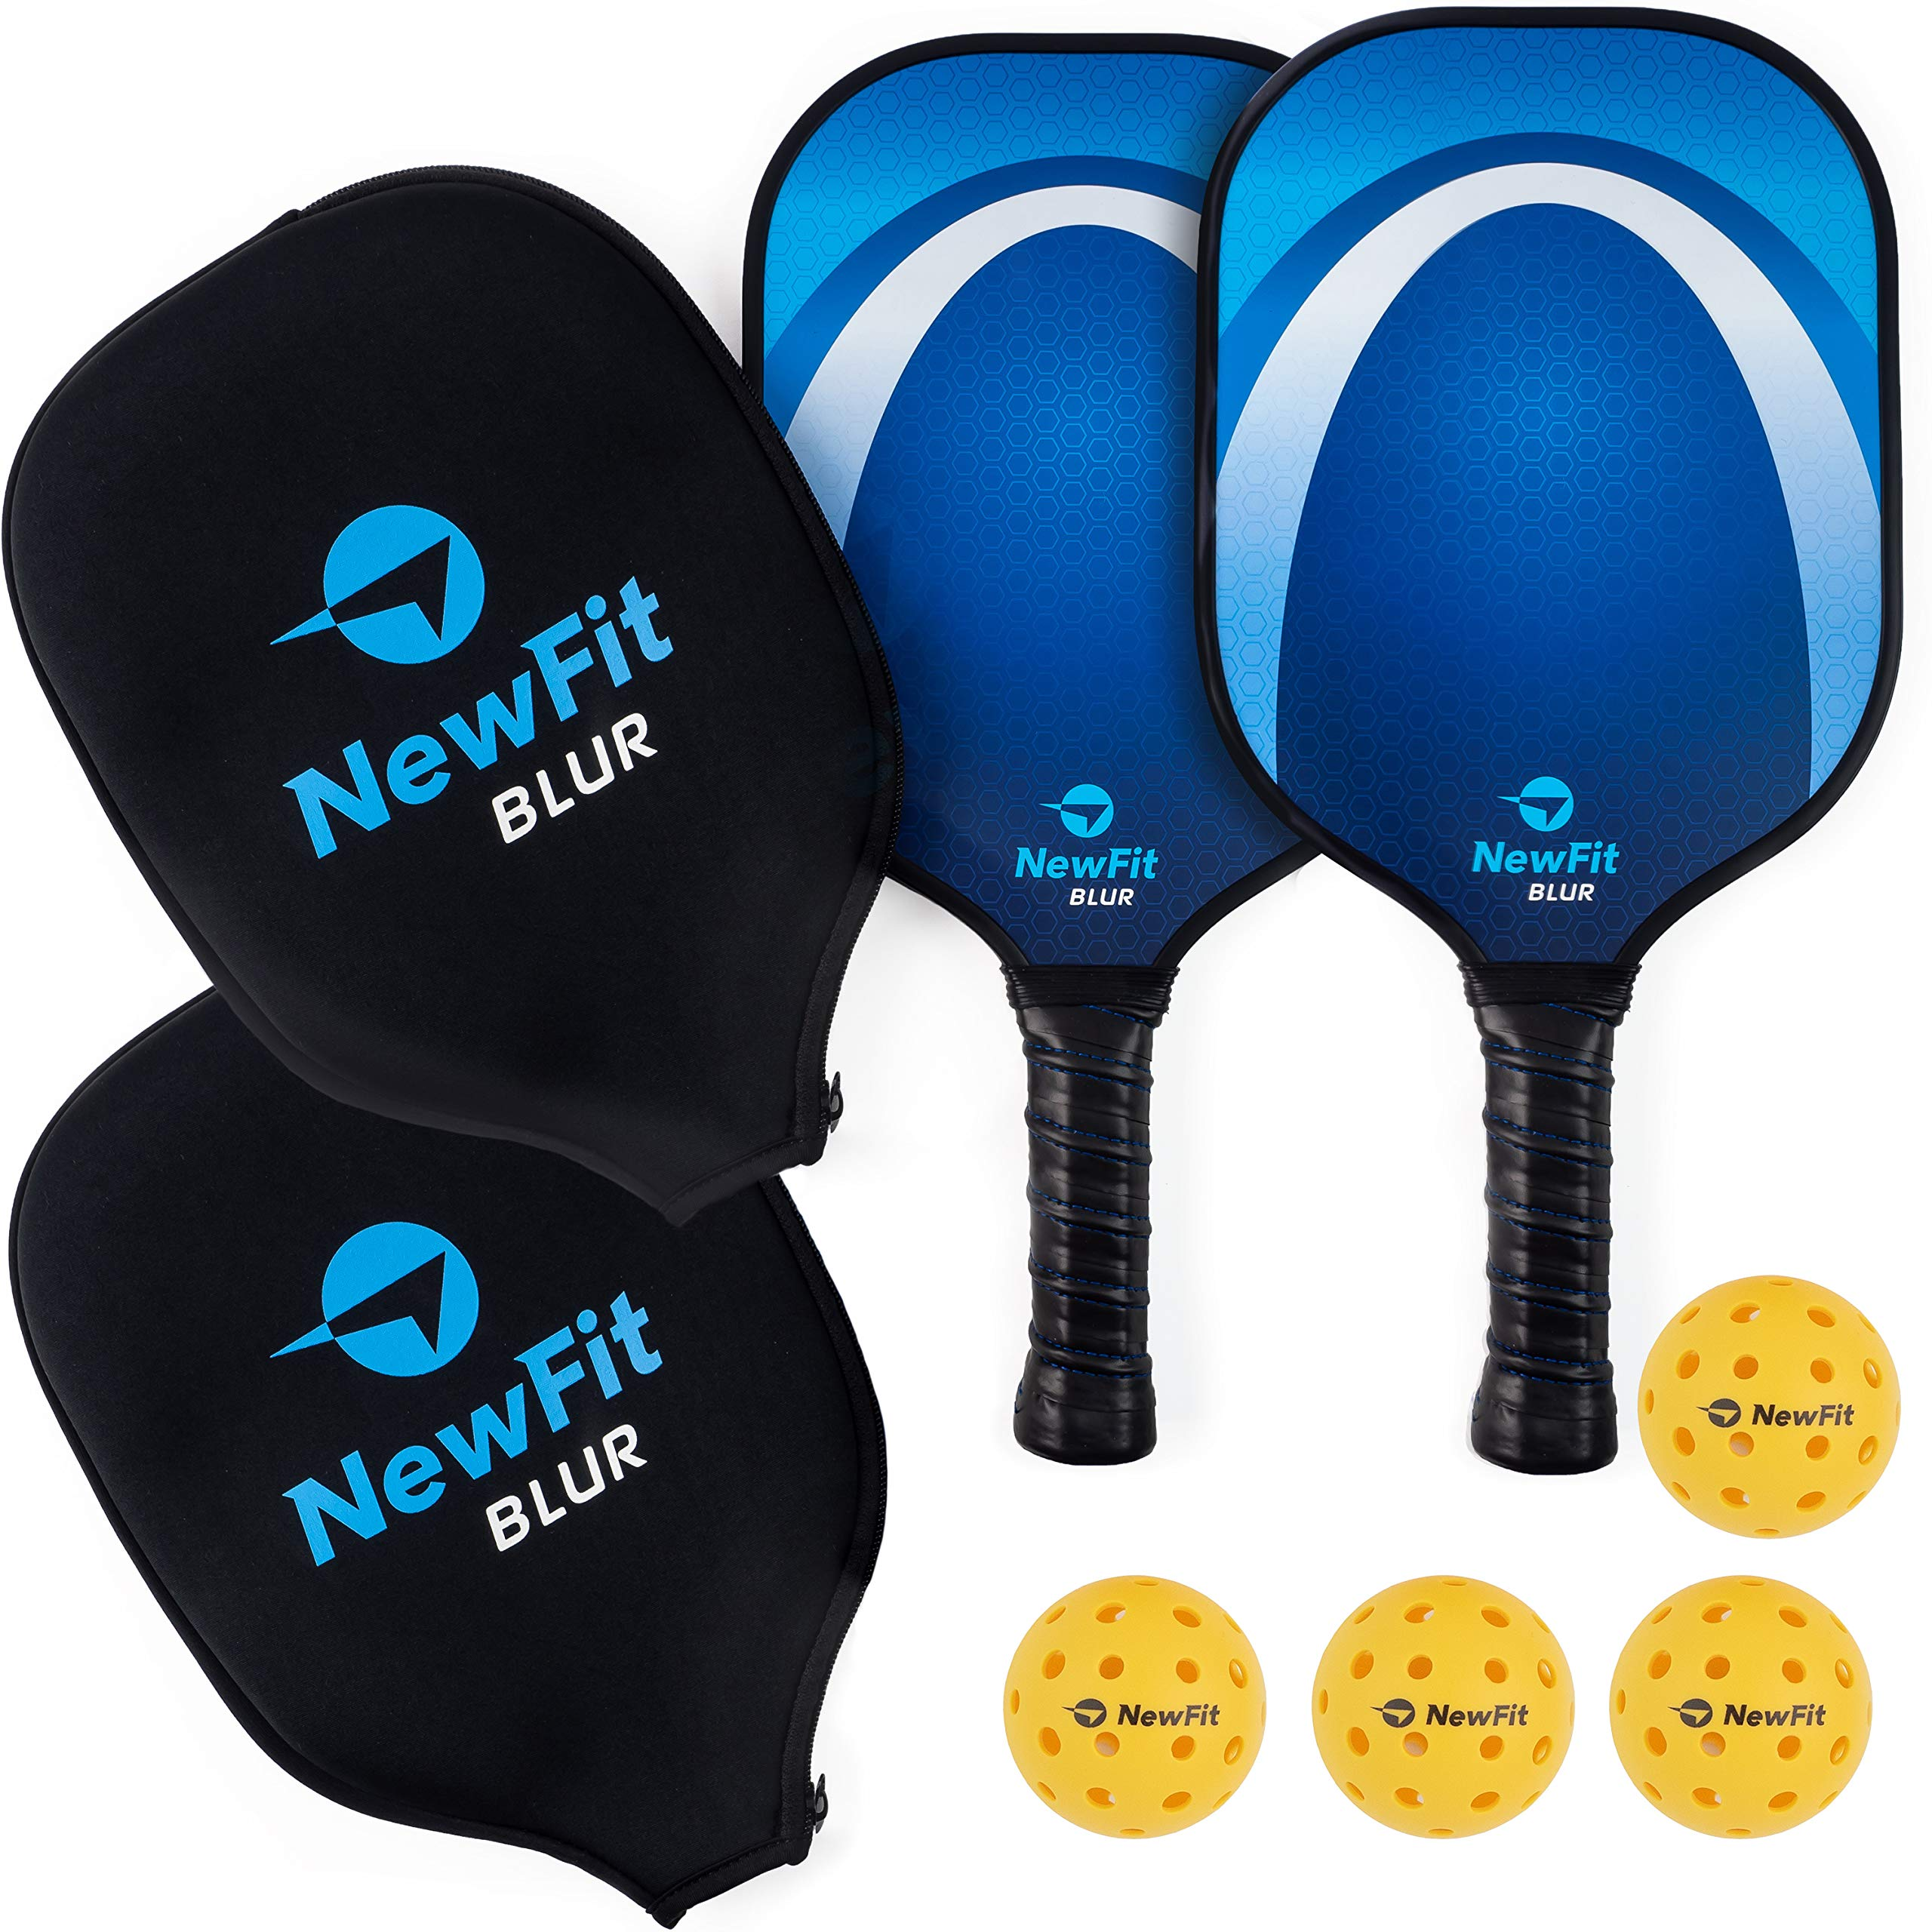 NewFit Blur Pickleball Paddle | USAPA Approved | Graphite Face & Polymer Core for a Quiet and Light Racket | 2 Paddles Set w/ 4 Balls (Blue Set)